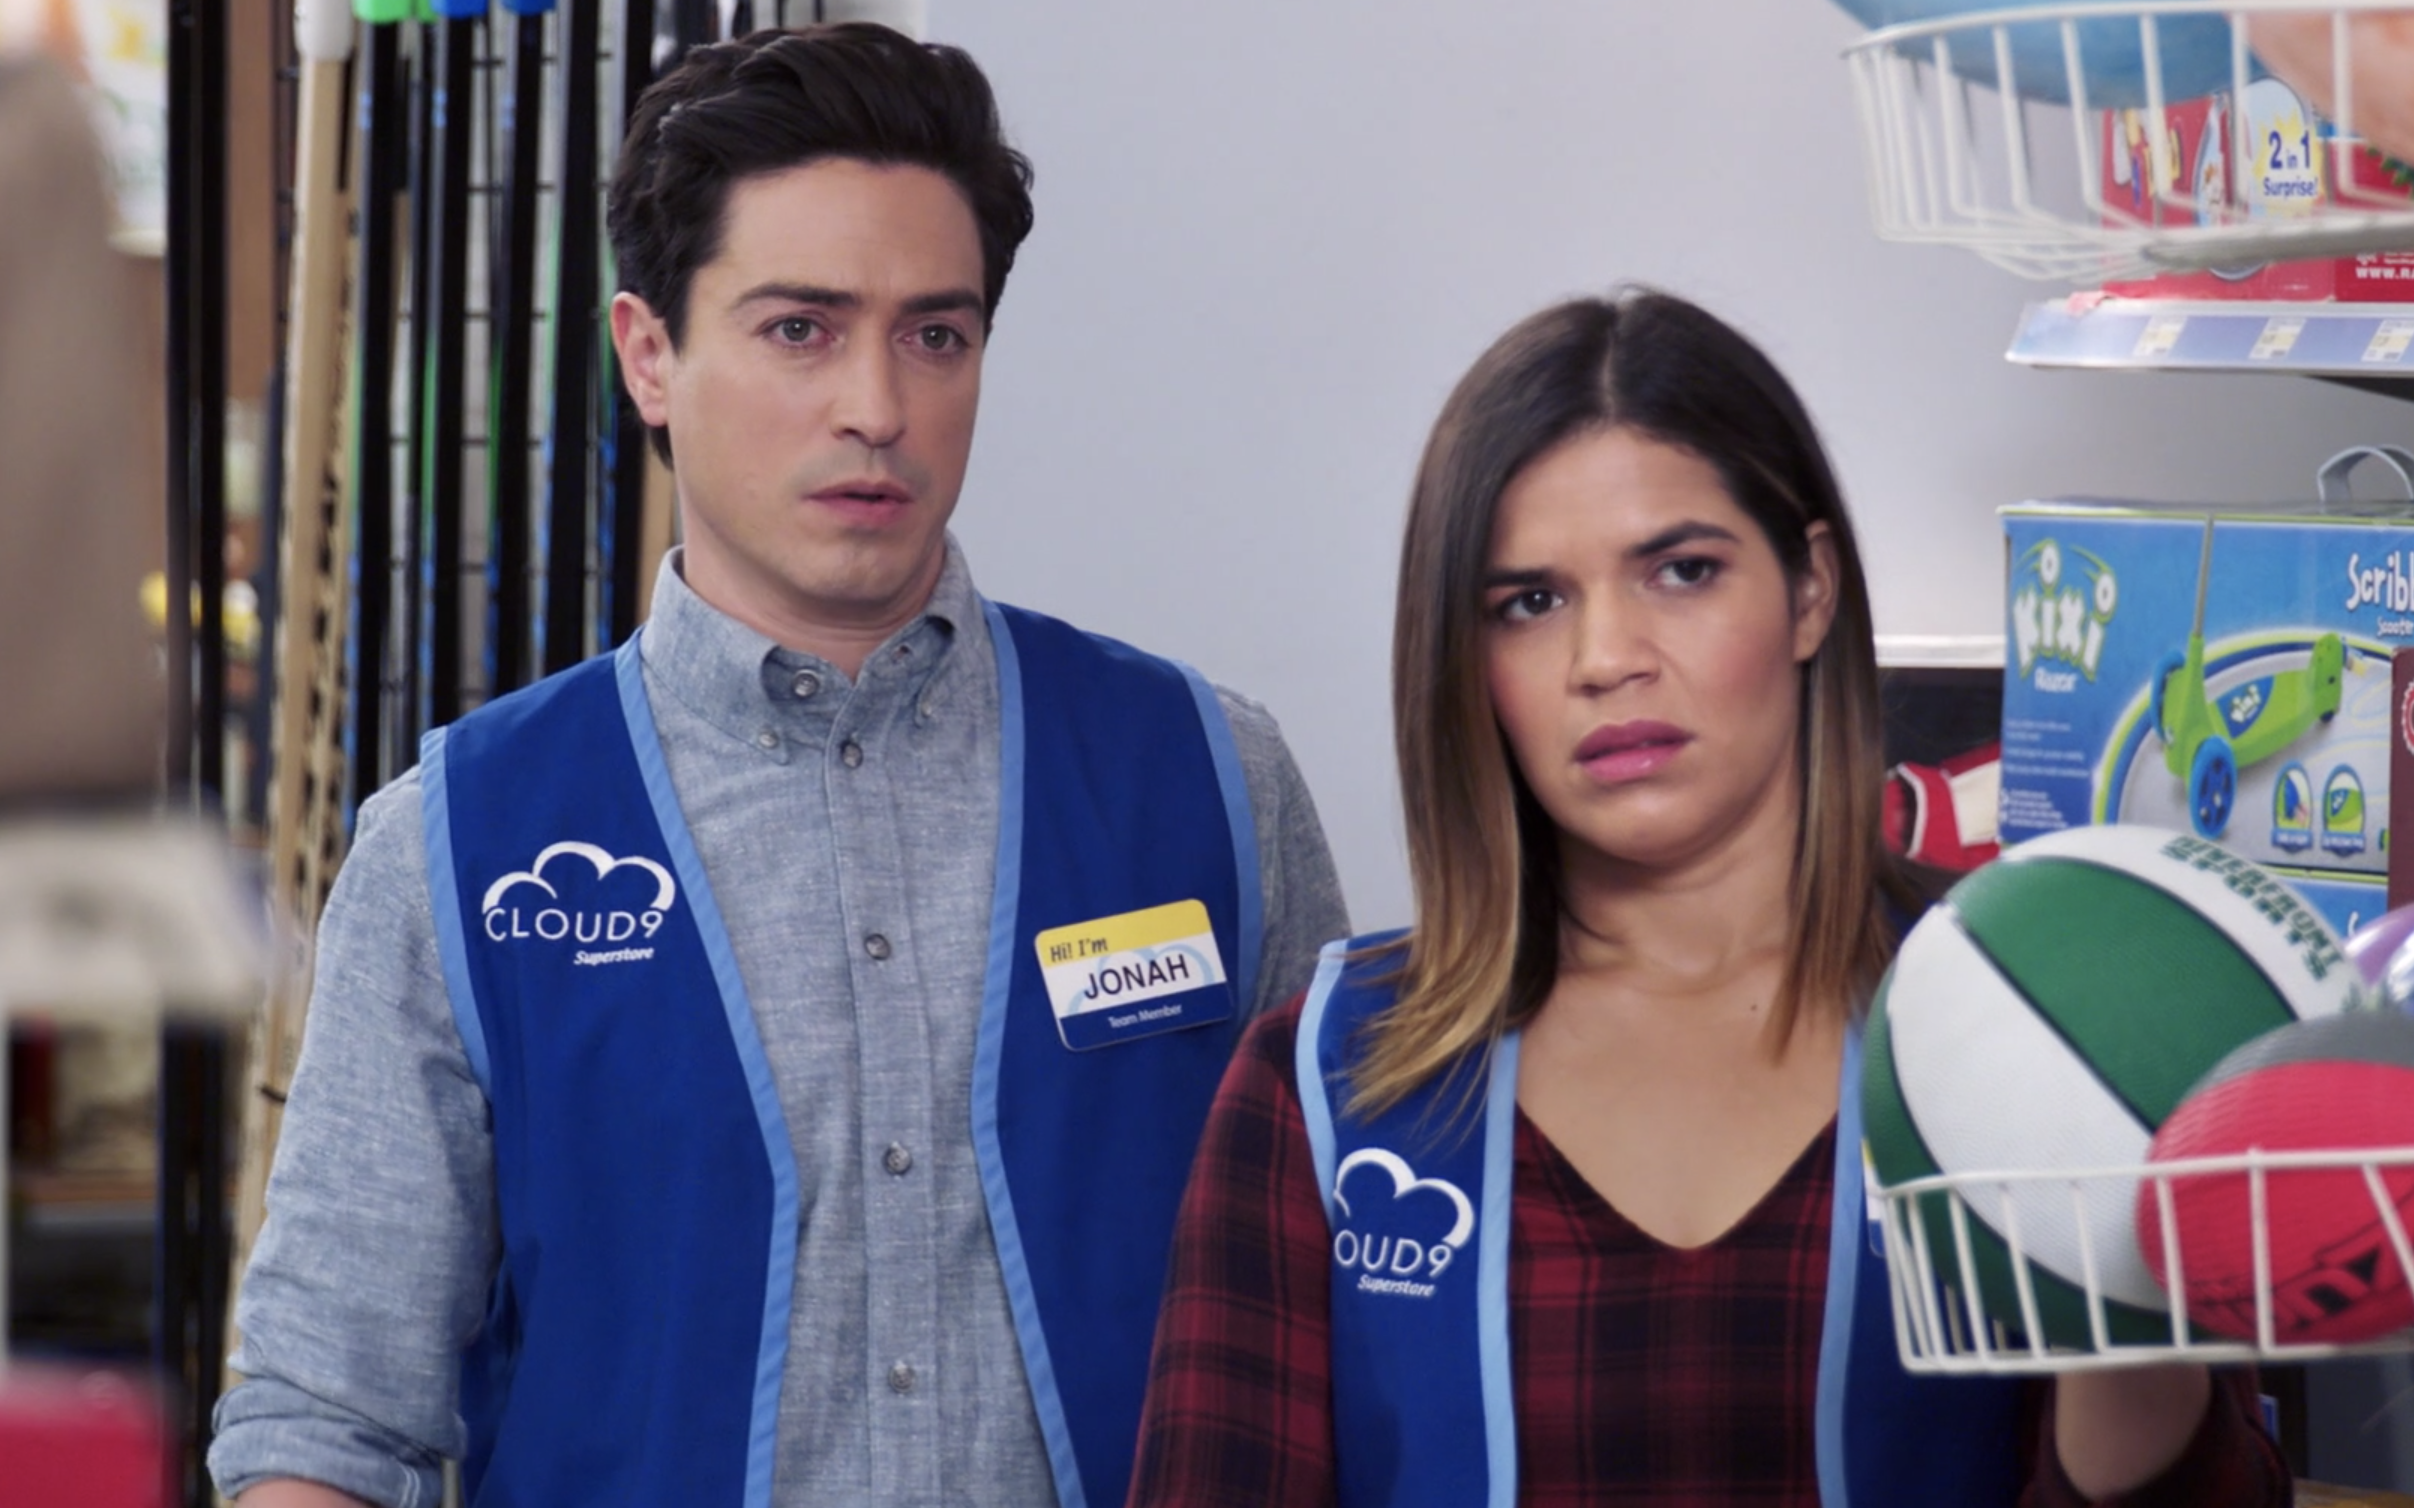 Jonah and Amy spy on a colleague in the store